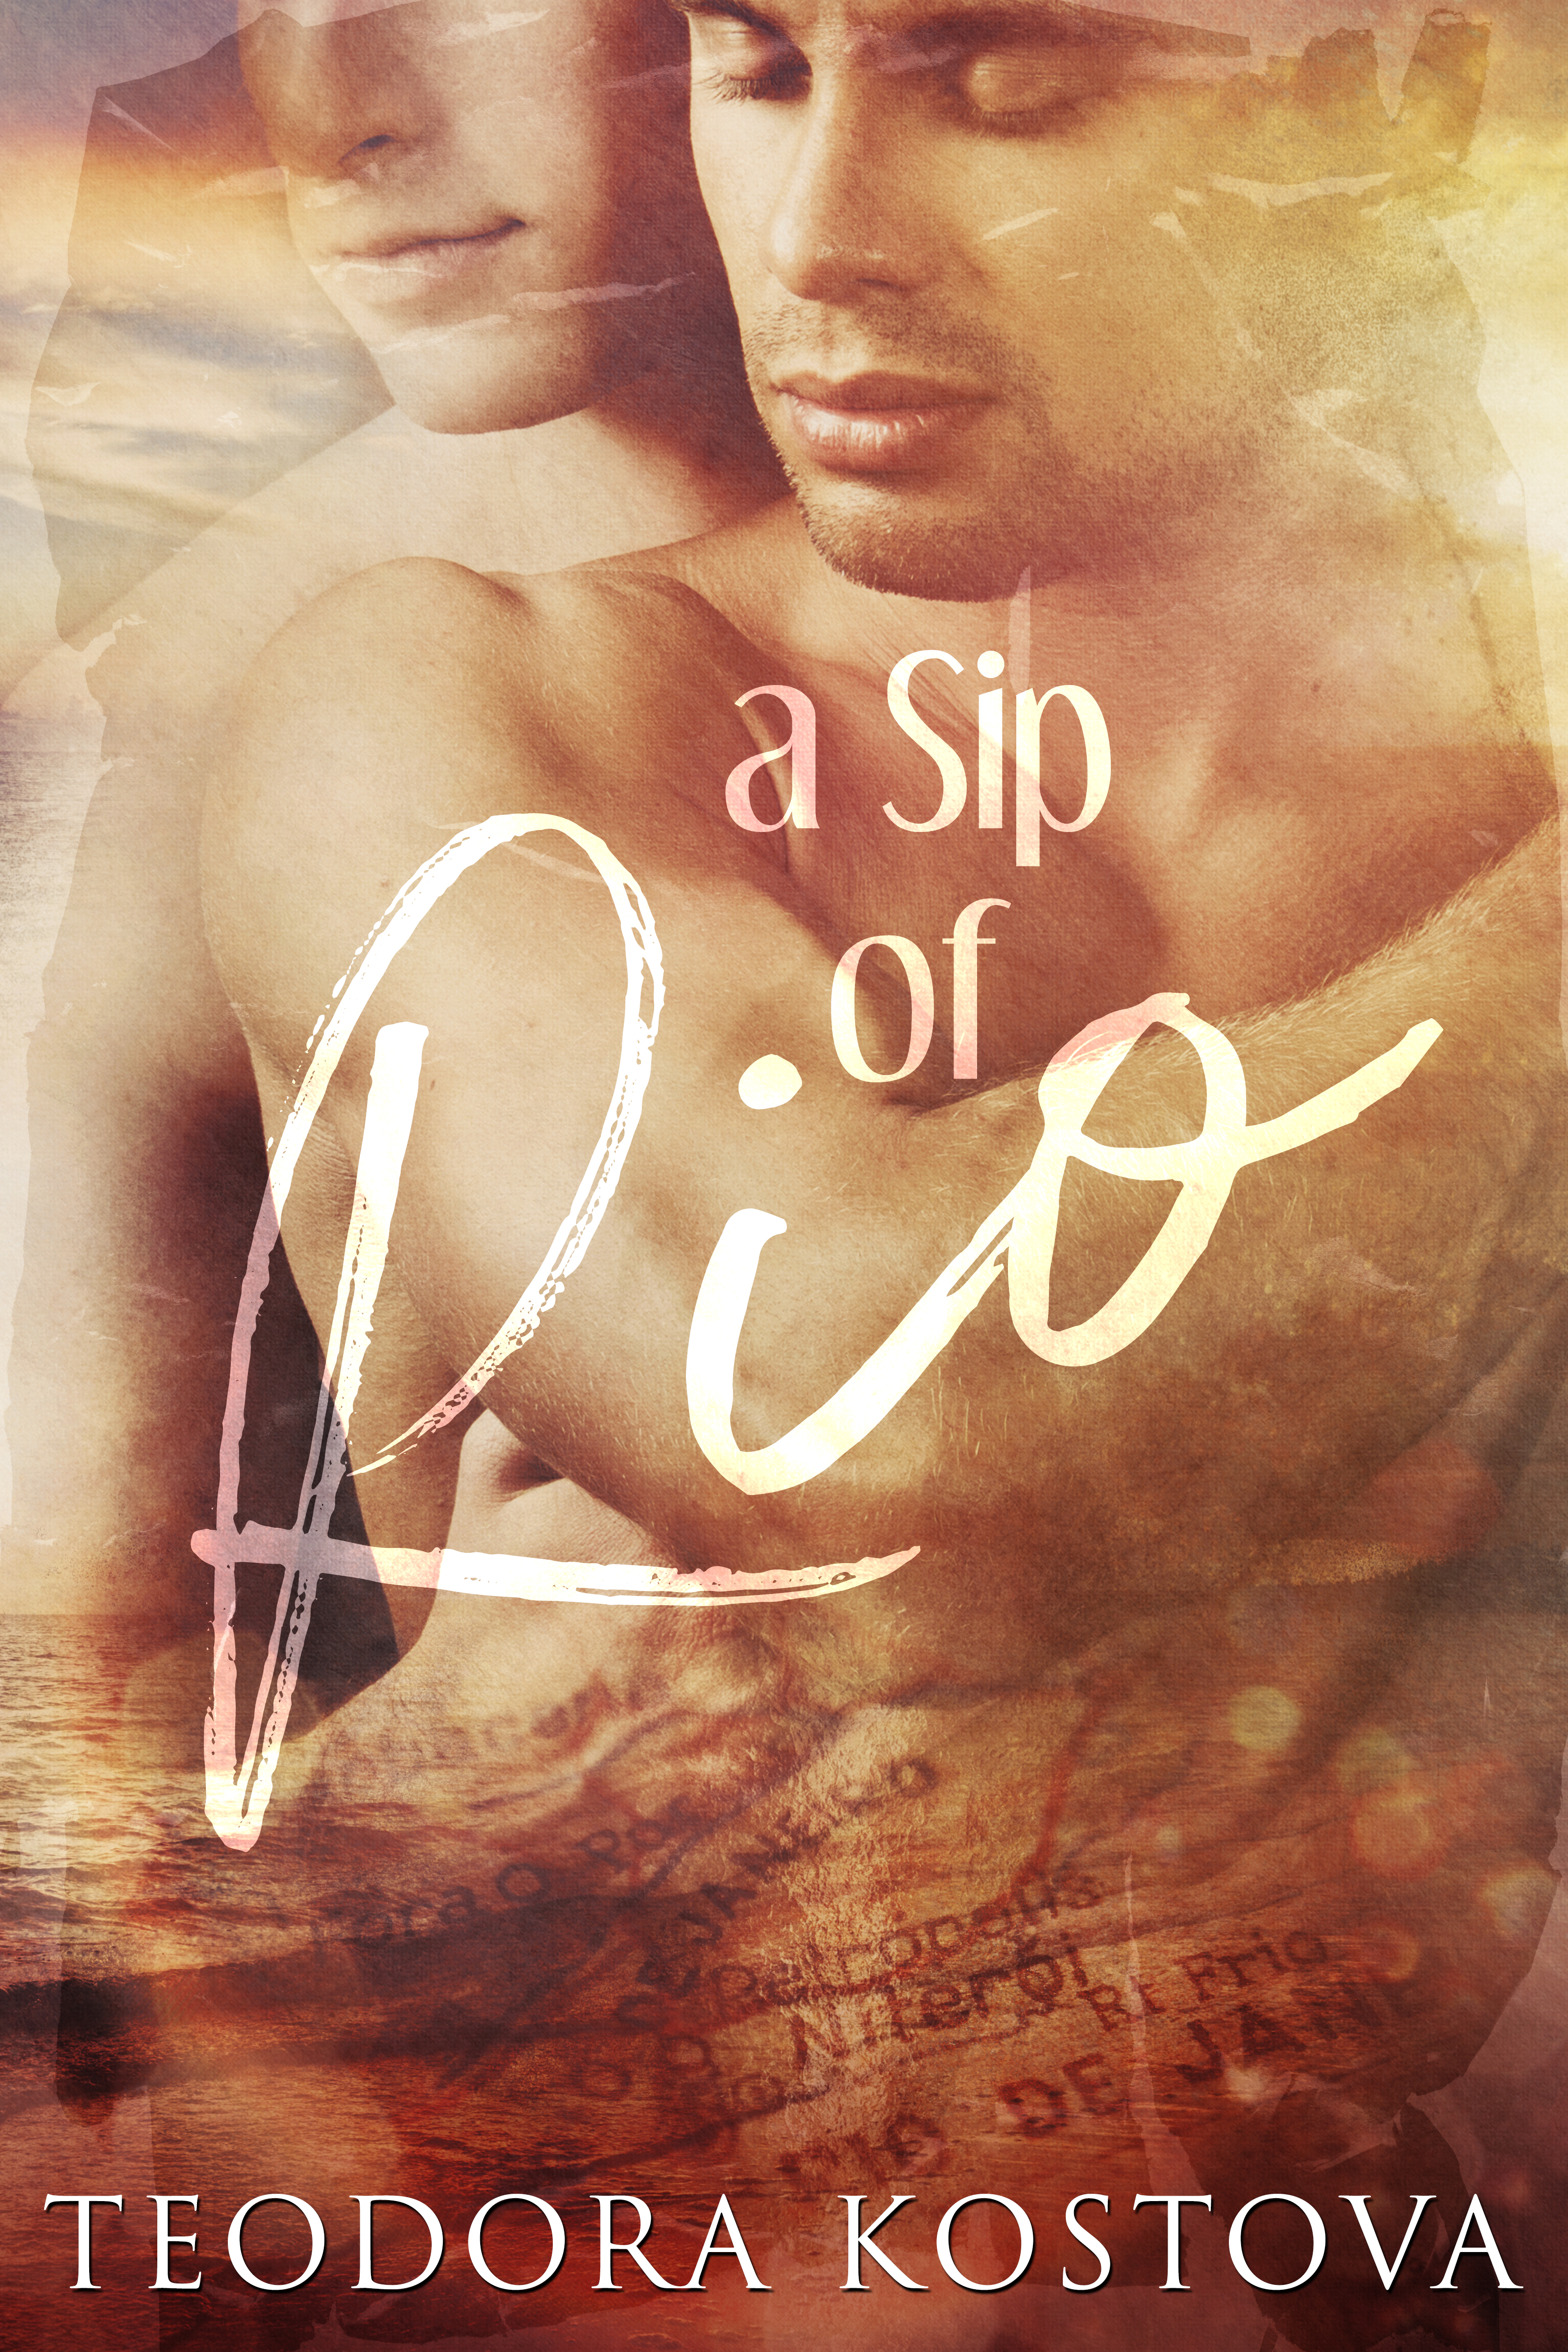 Guest Post and Giveaway: Sip of Rio by Teodora Kostova